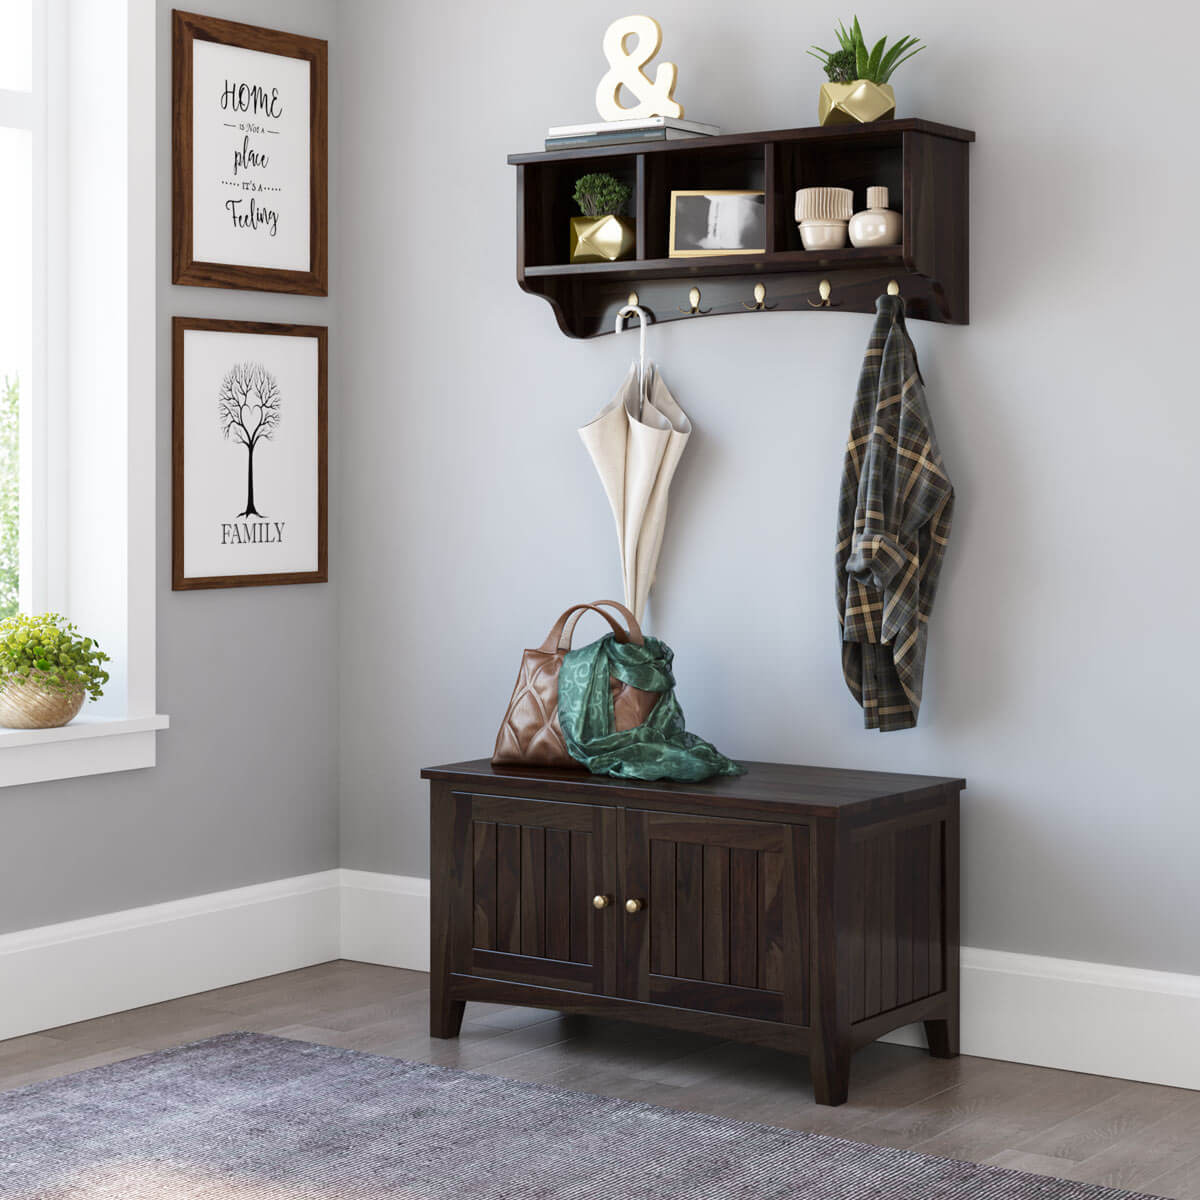 Smithsburg Rustic Solid Wood Wall Hanging Hall Tree Bench with Storage